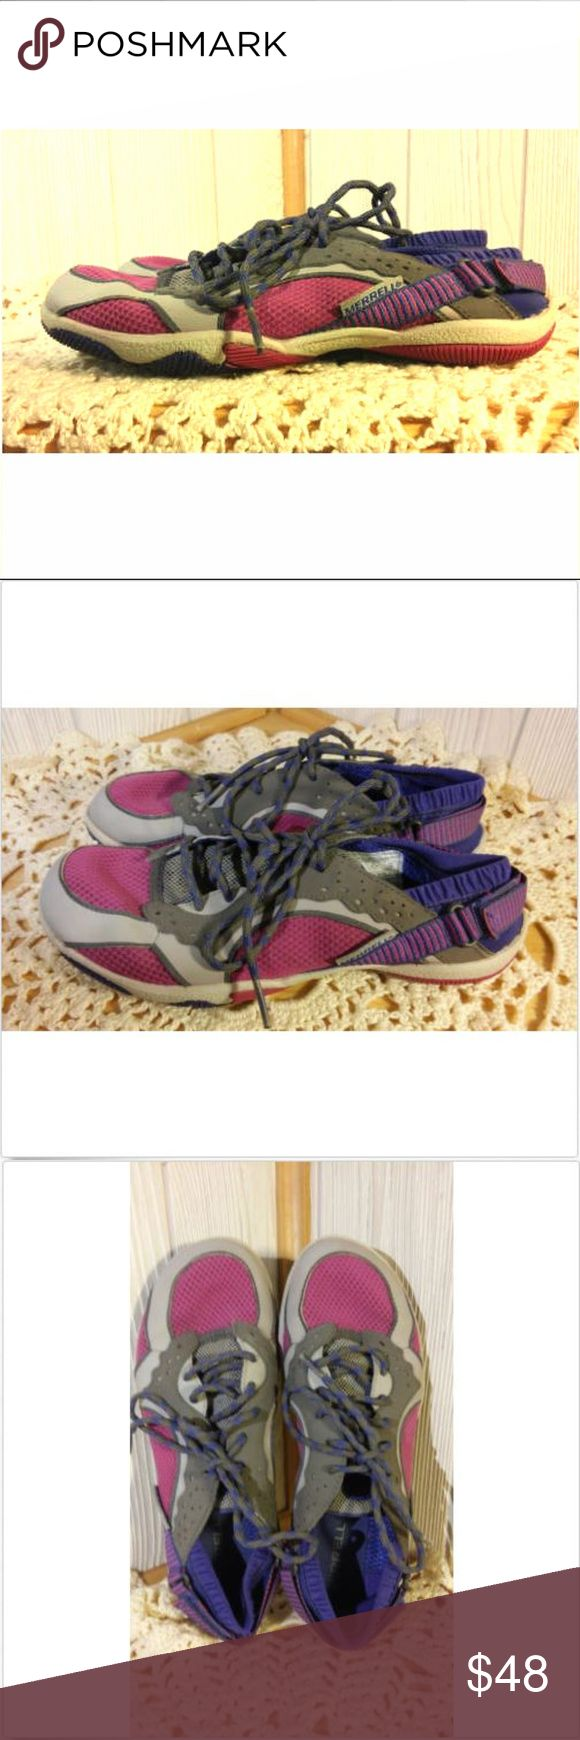 Merrell Barefoot Running Shoes Water Resistant Swift Glove by Merrell in Women's Size 6 Very good used condition!!! Drizzle/Mulberry Durable Water Resistant Shoes Merrell Shoes Athletic Shoes